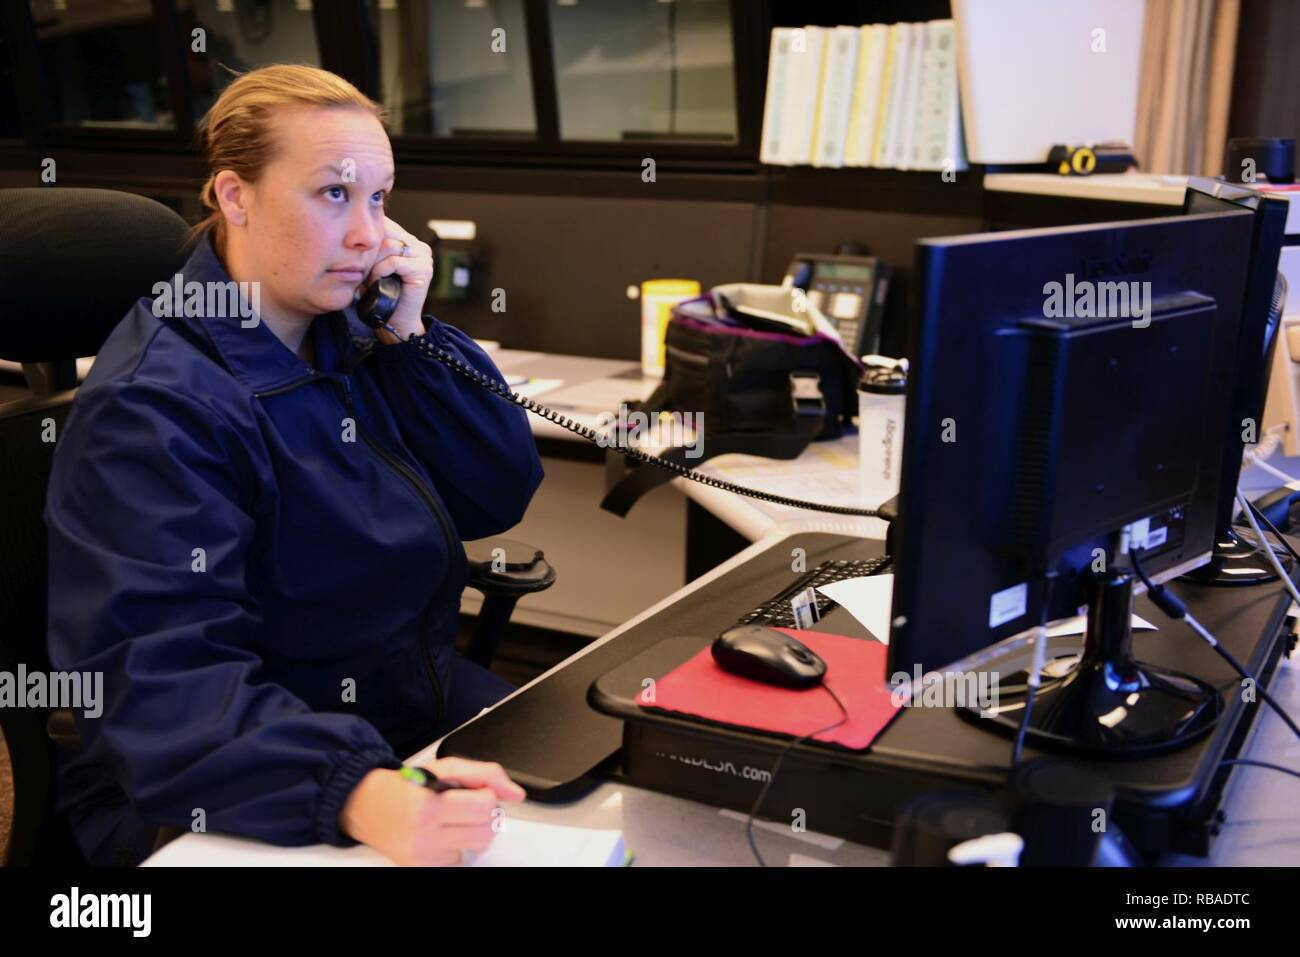 Chief Petty Officer Nichole Vital stands a 12-hour watch on duty as an operations specialist in the 13th Coast Guard District Command Center, Jan. 9, 2017. Vital is one of the few Coast Guard men and women who are responsible for monitoring a multi-mission communication platform and responding to a variety of cases from search and rescue or law enforcement case execution, to combat information center operations or intelligence gathering. U.S. Coast Guard - Stock Image